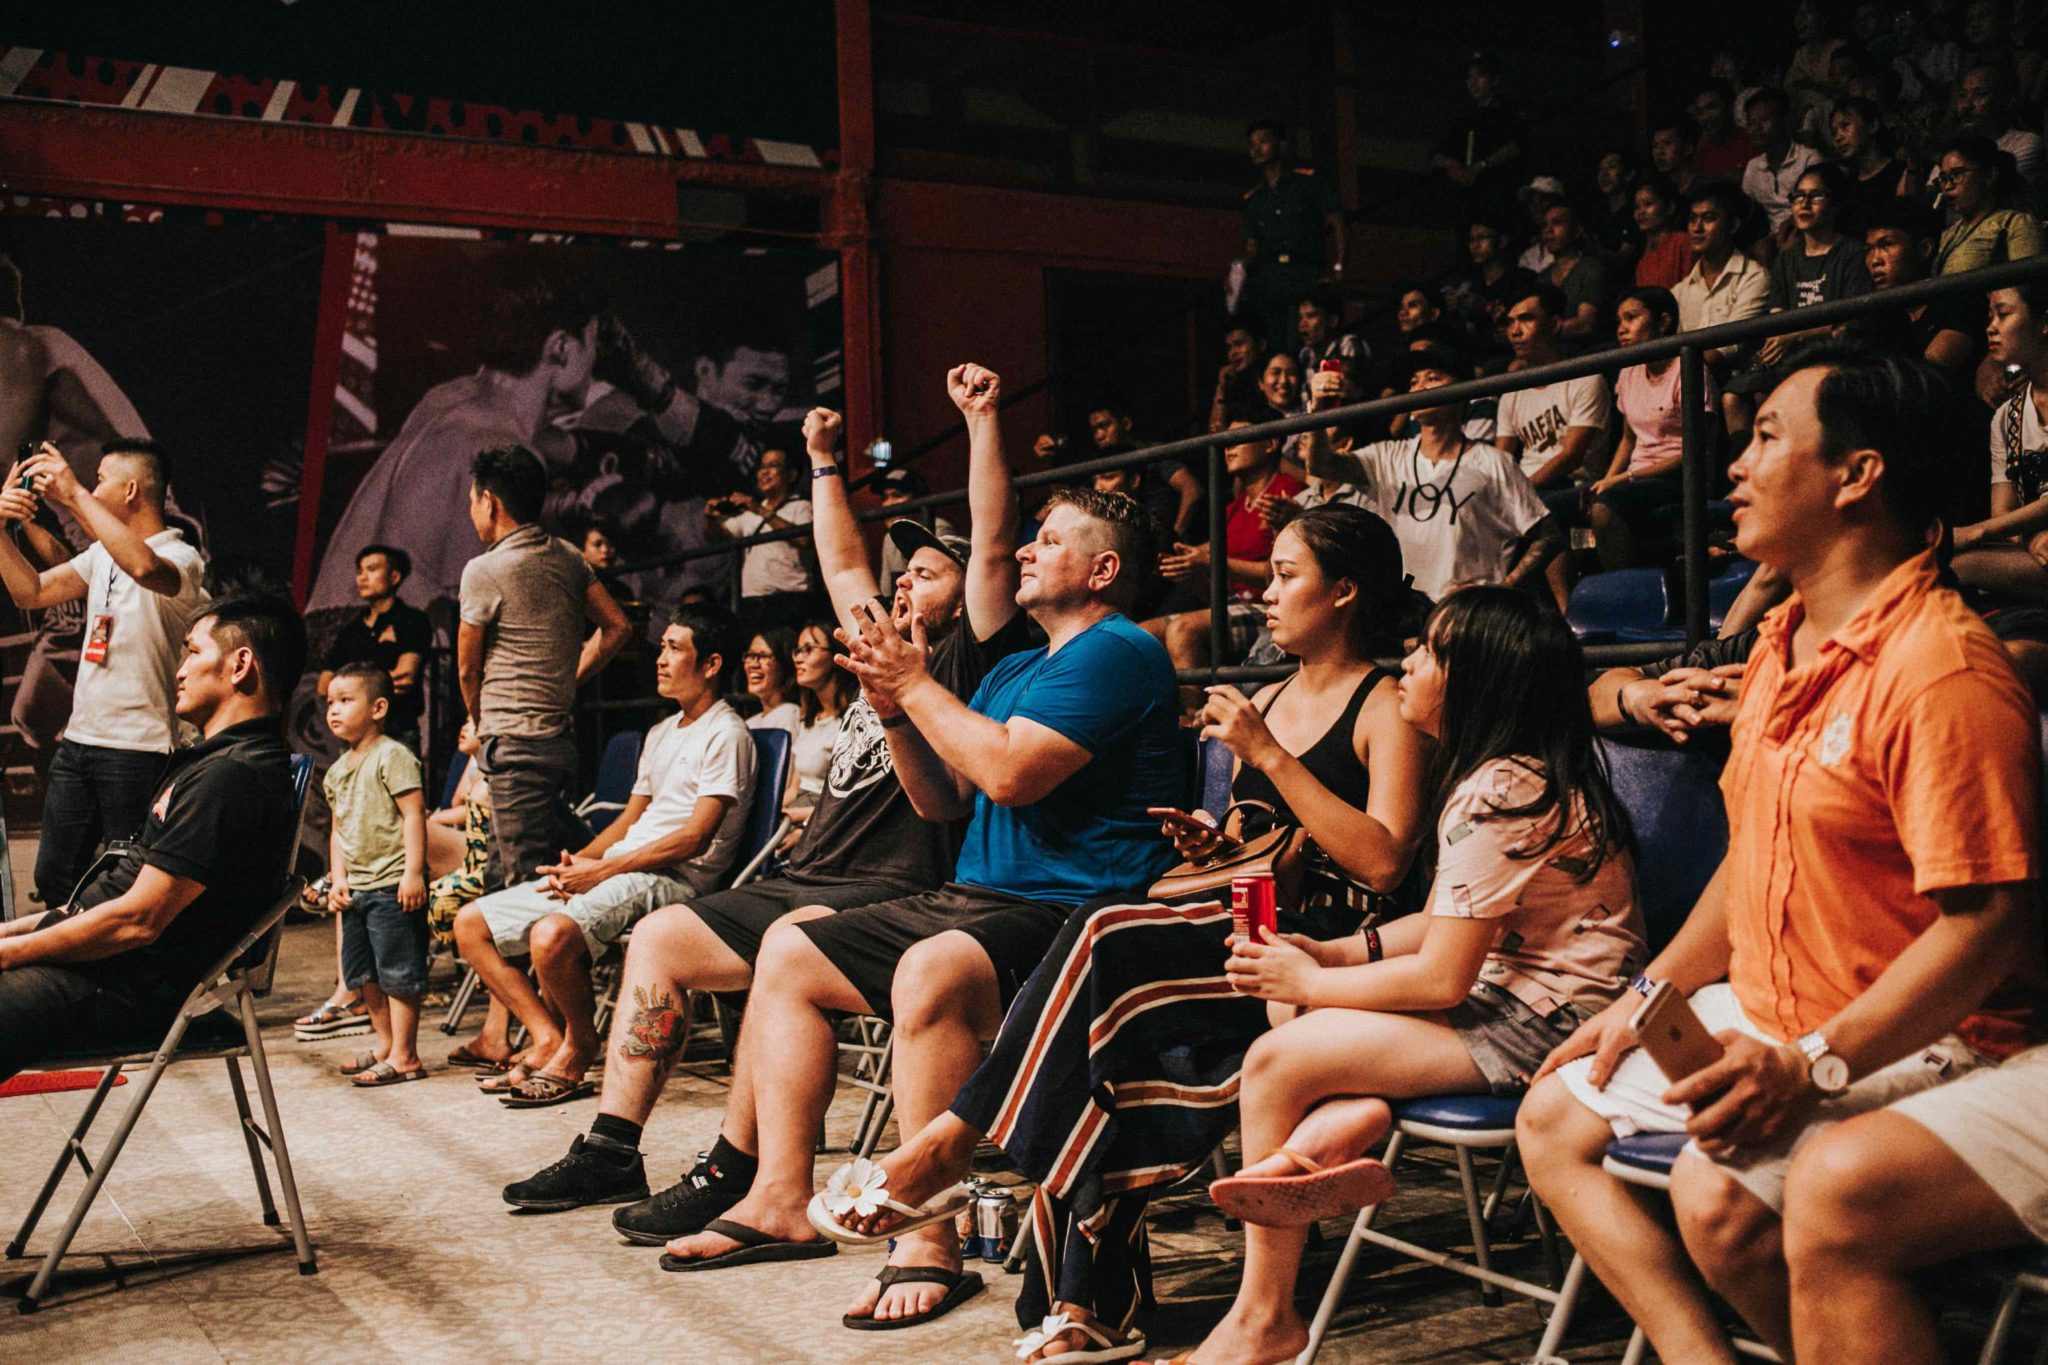 Standing vs  sitting at a concert: What to do?